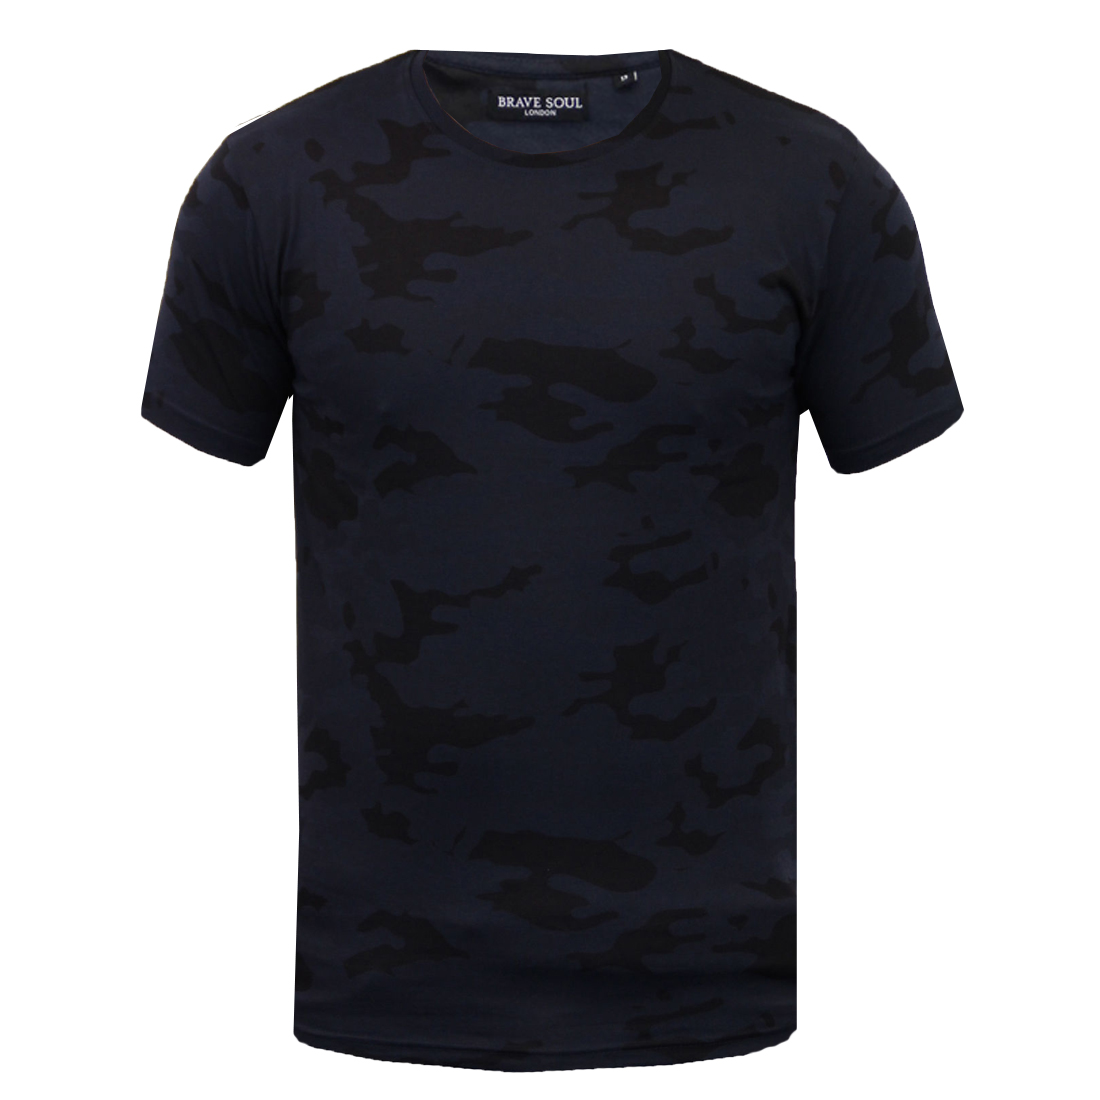 Men s 100% Cotton T-Shirt Military Camo Camouflage Tee Top By Brave Soul c814e84fb1